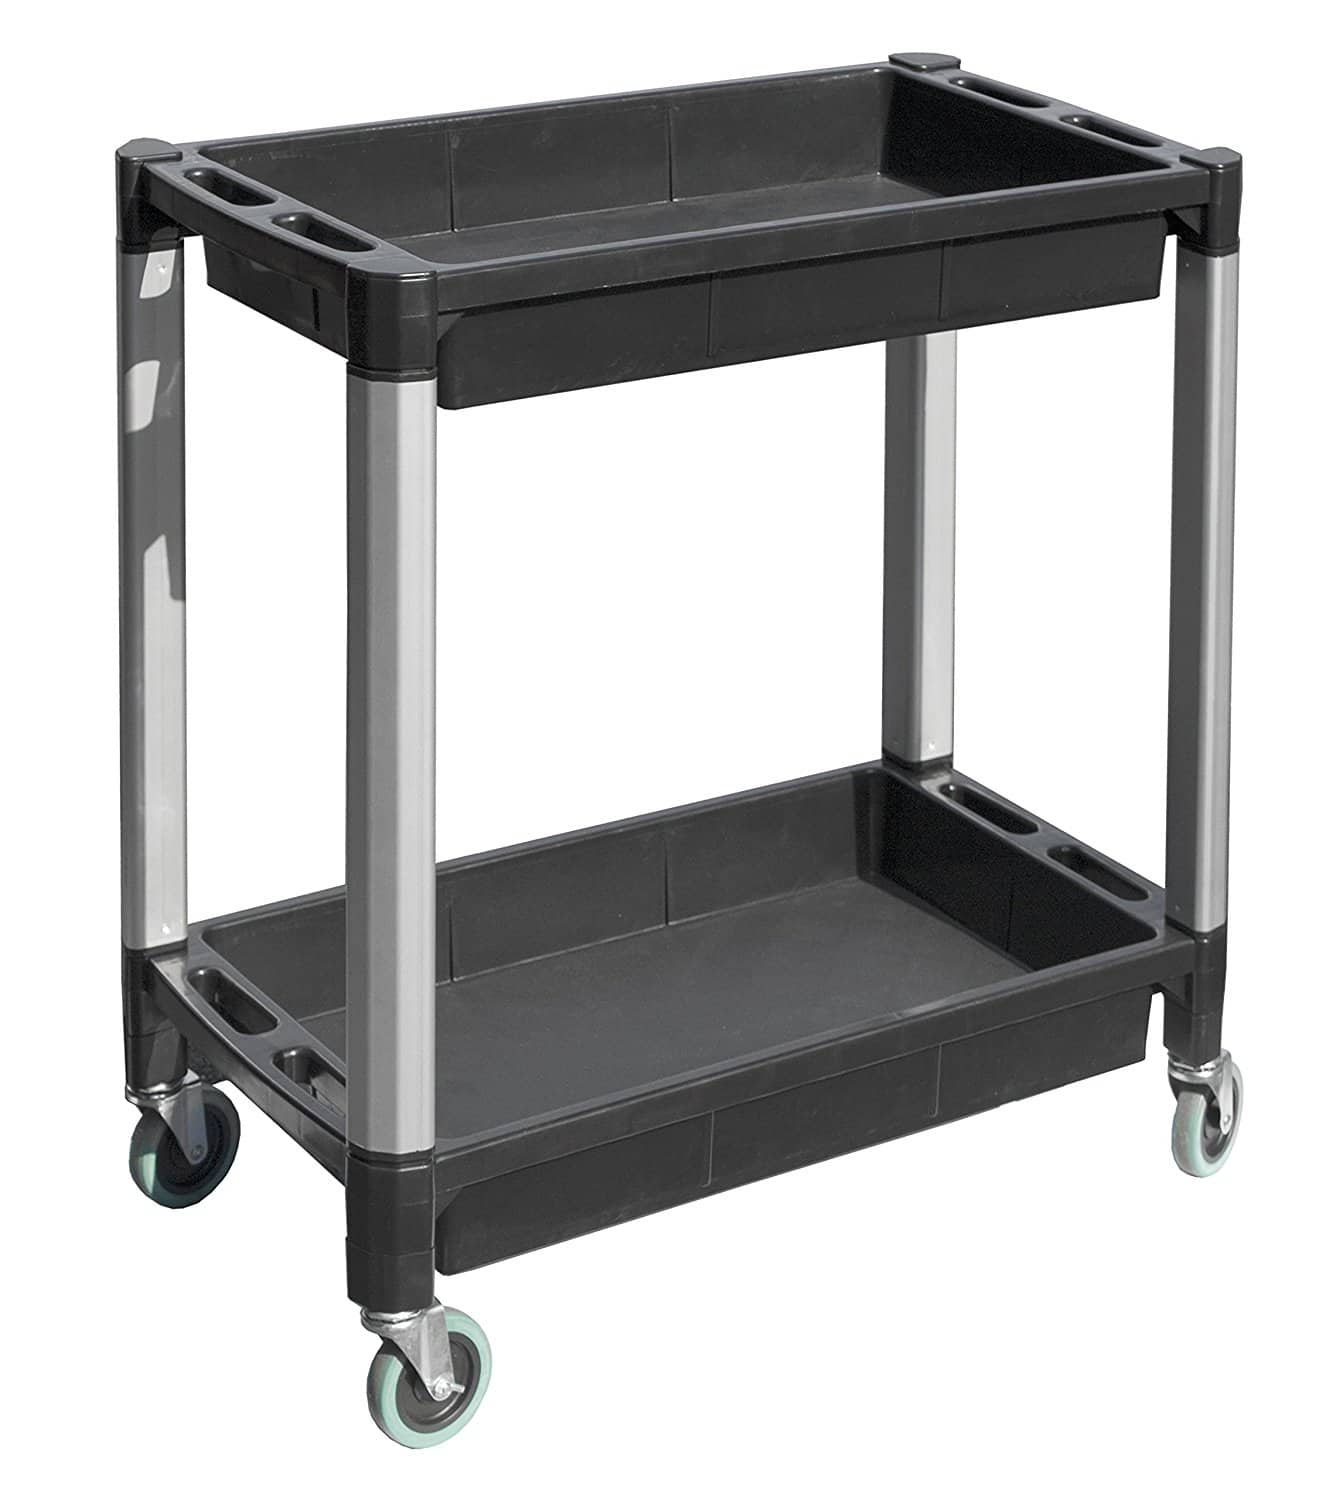 Maxworks black and gray two tray service/utility cart $49.99